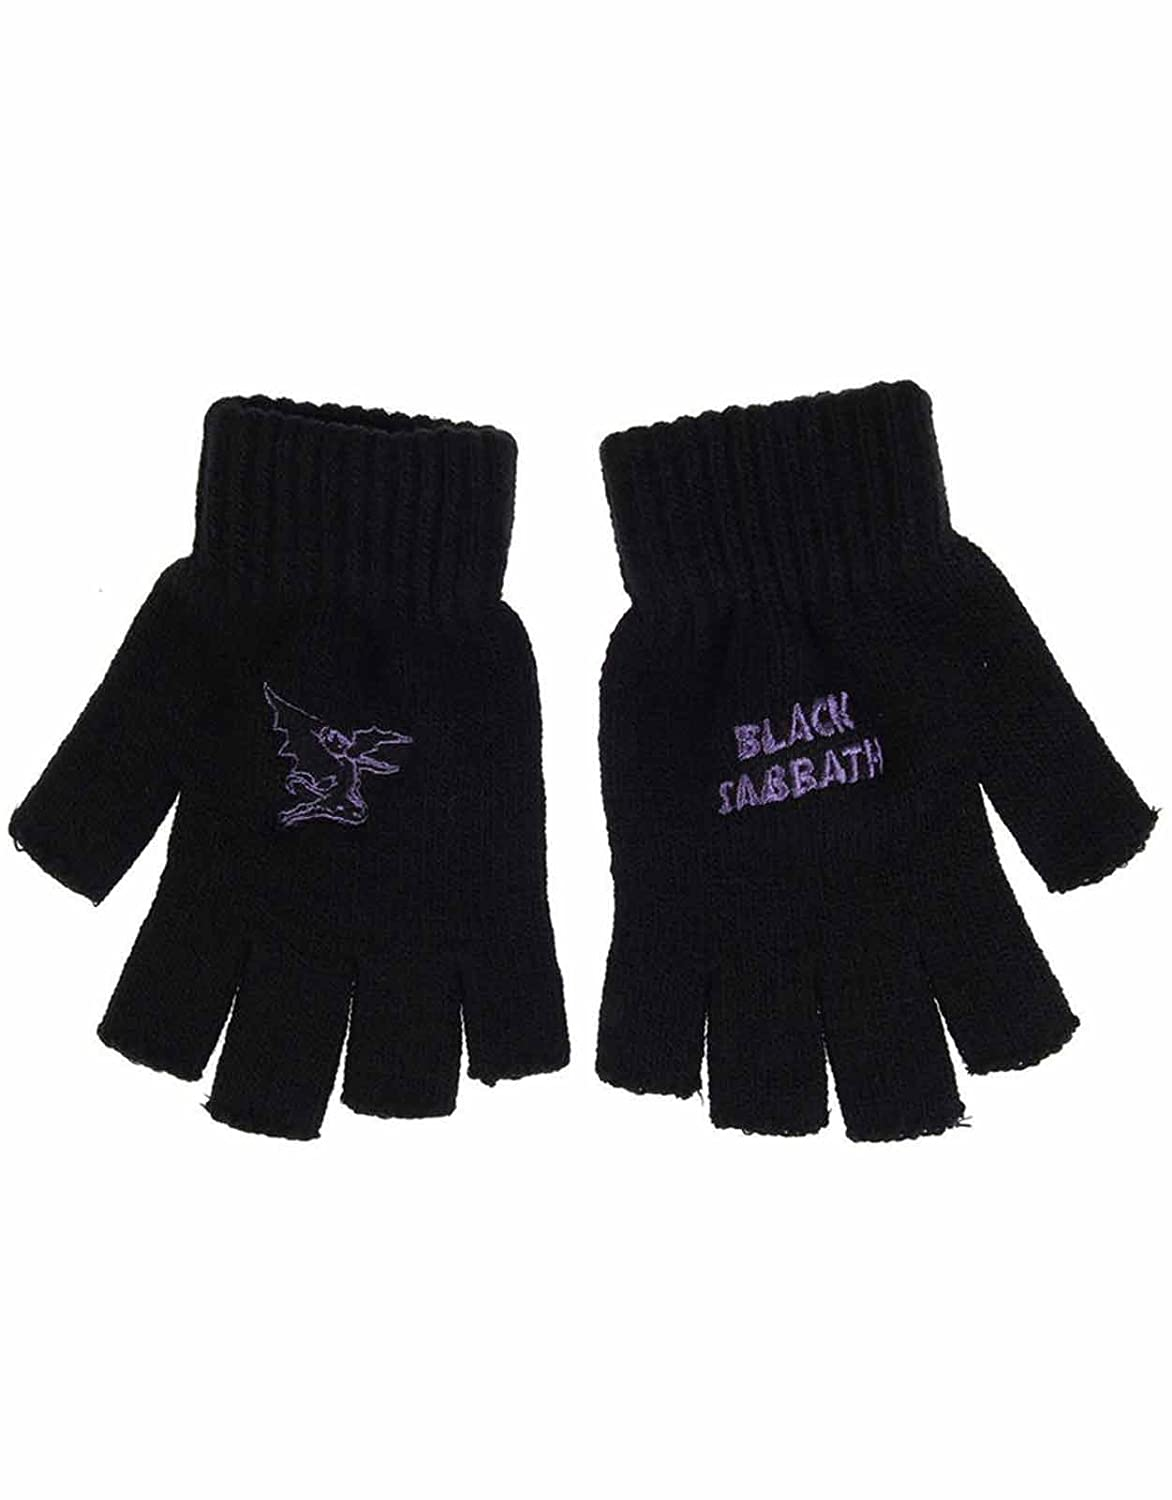 Black Sabbath Gloves Band Logo devil Official New Black Cotton Fingerless